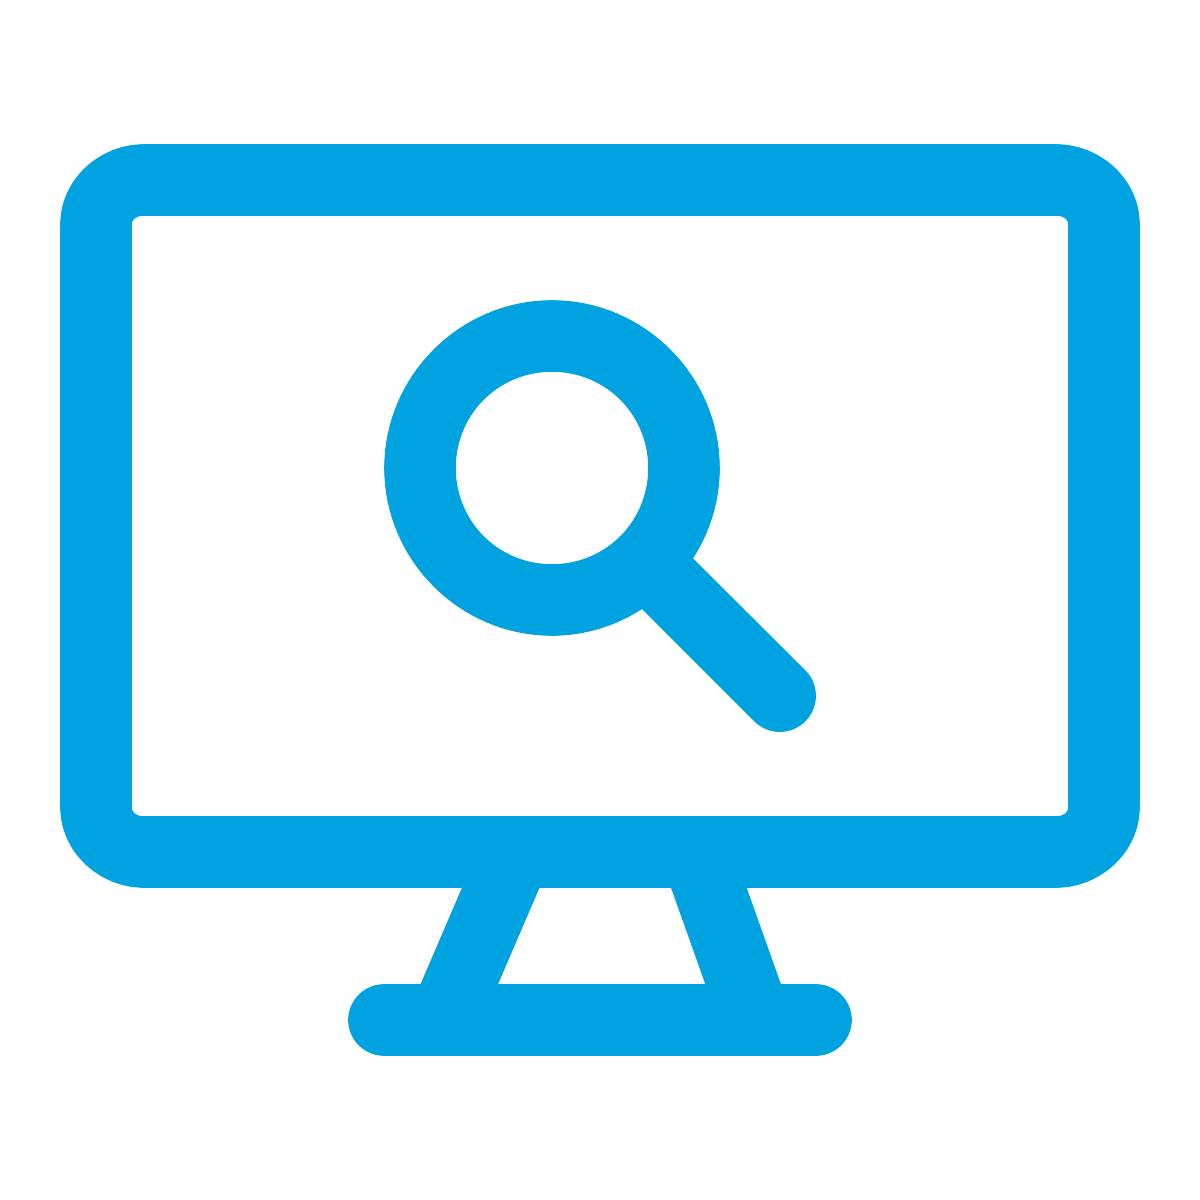 Search Symbol on a Computer Monitor